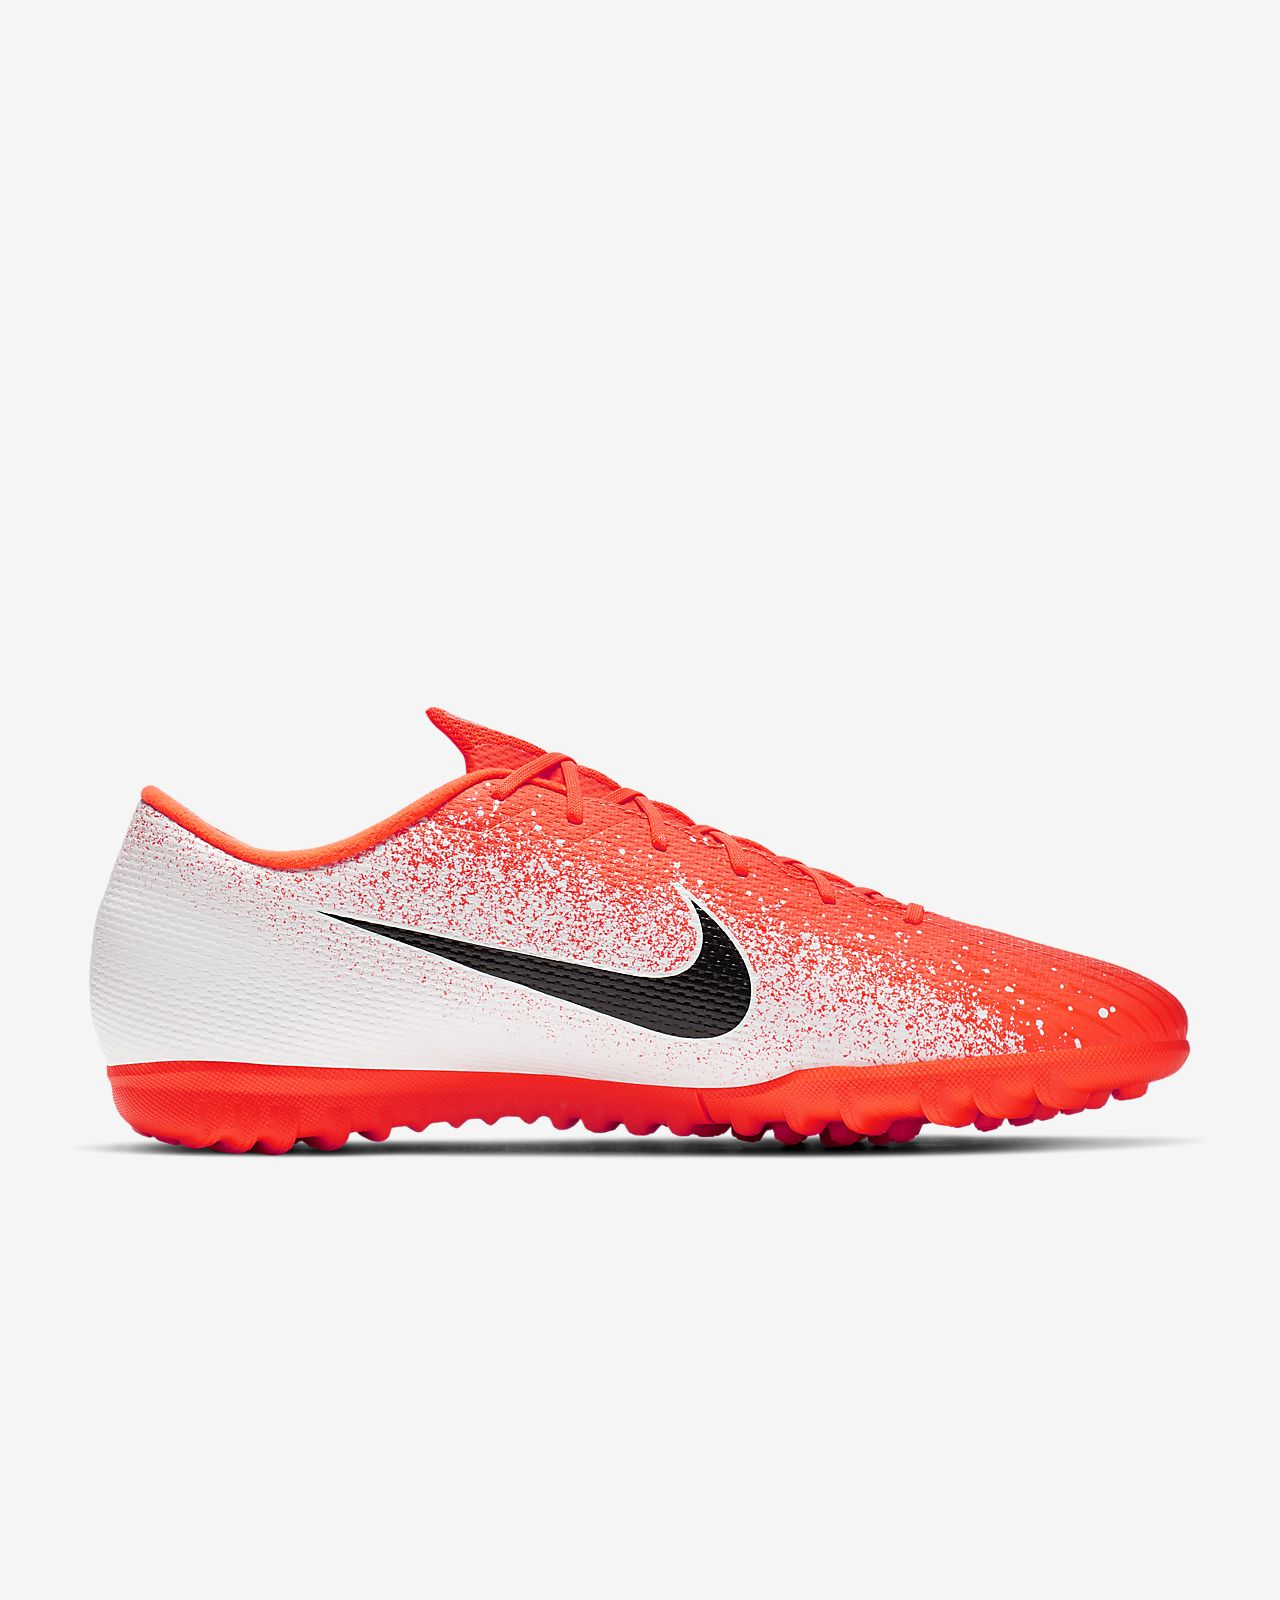 7d37cfa2c3a Nike VaporX 12 Academy TF Artificial-Turf Football Boot